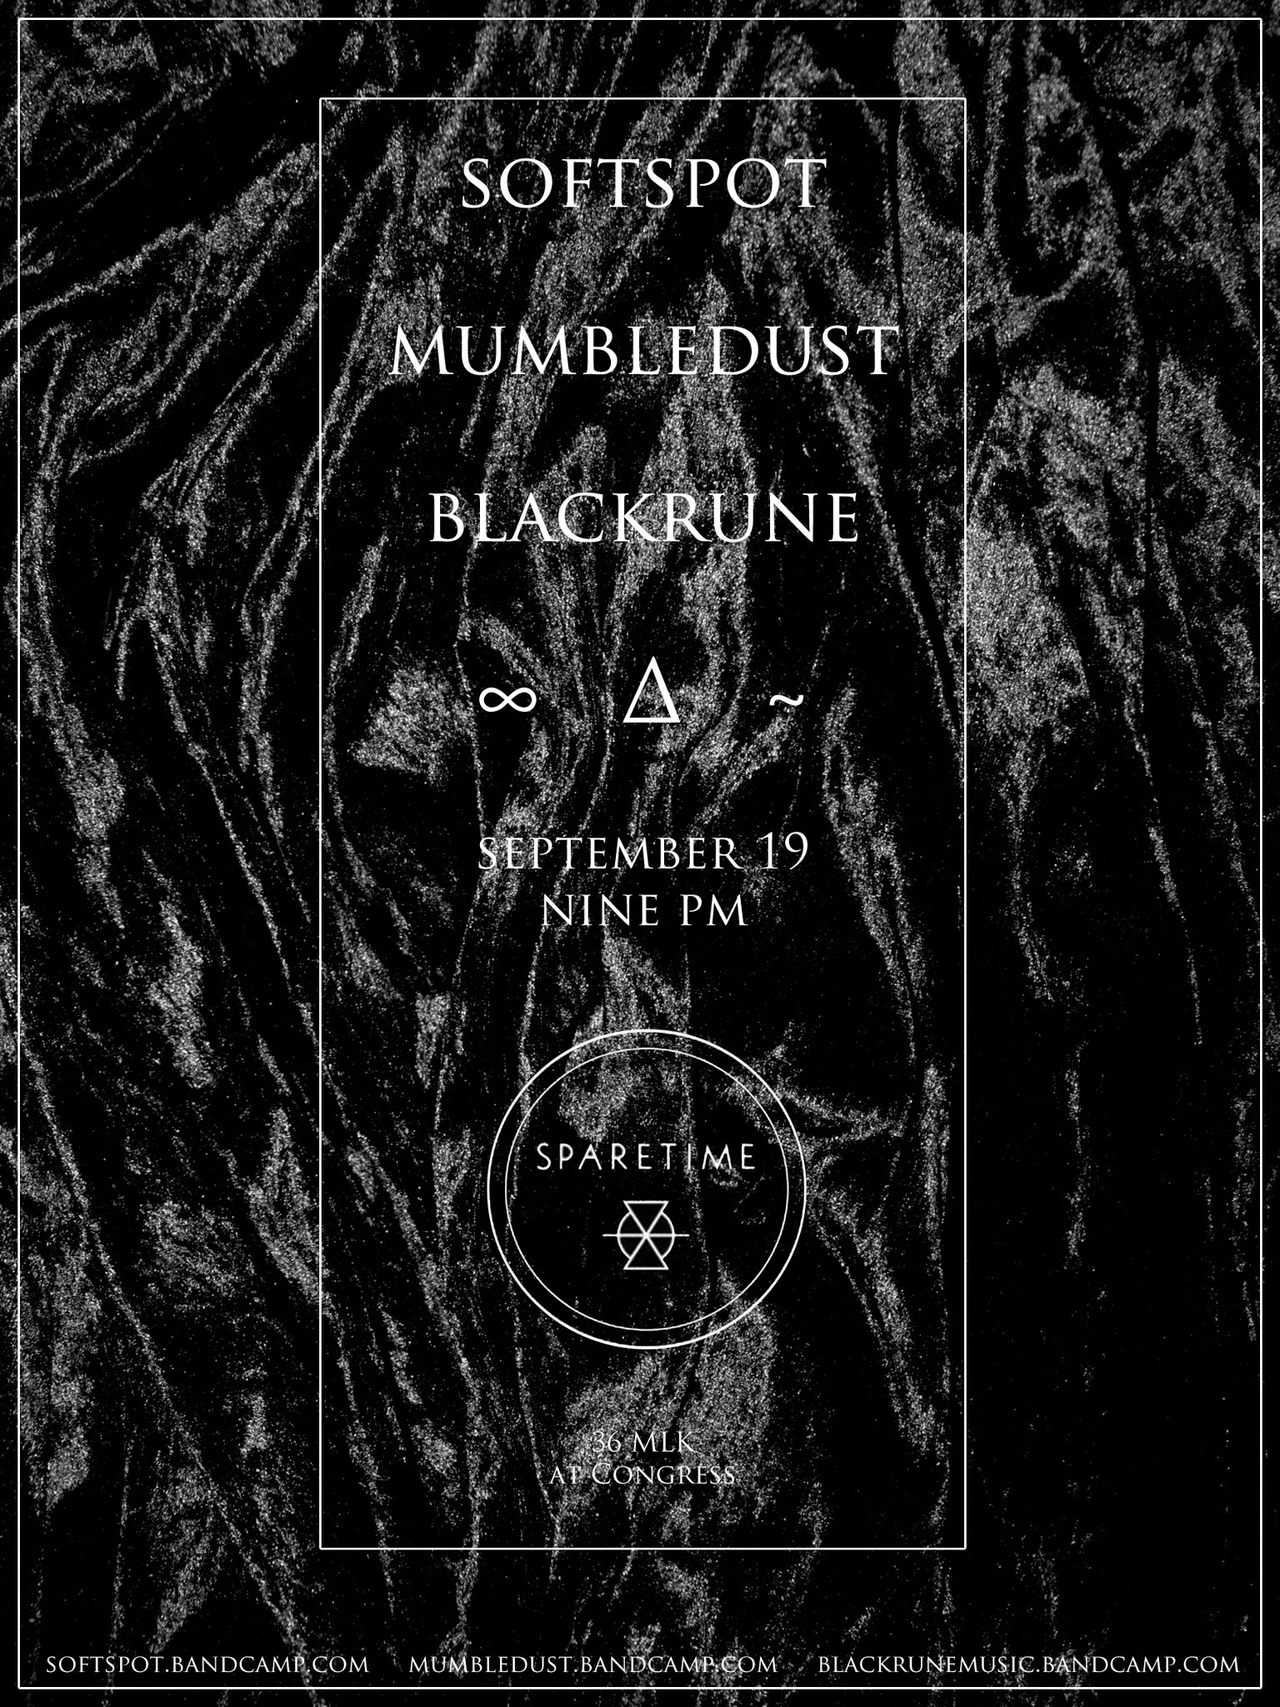 Well Savannah, we have a furhoof twofer coming up on Wednesday, 19 September 2012 with mumbledust and Blackrune playing together at the Sparetime in Savannah, GA with SoftSpot! Attend here.